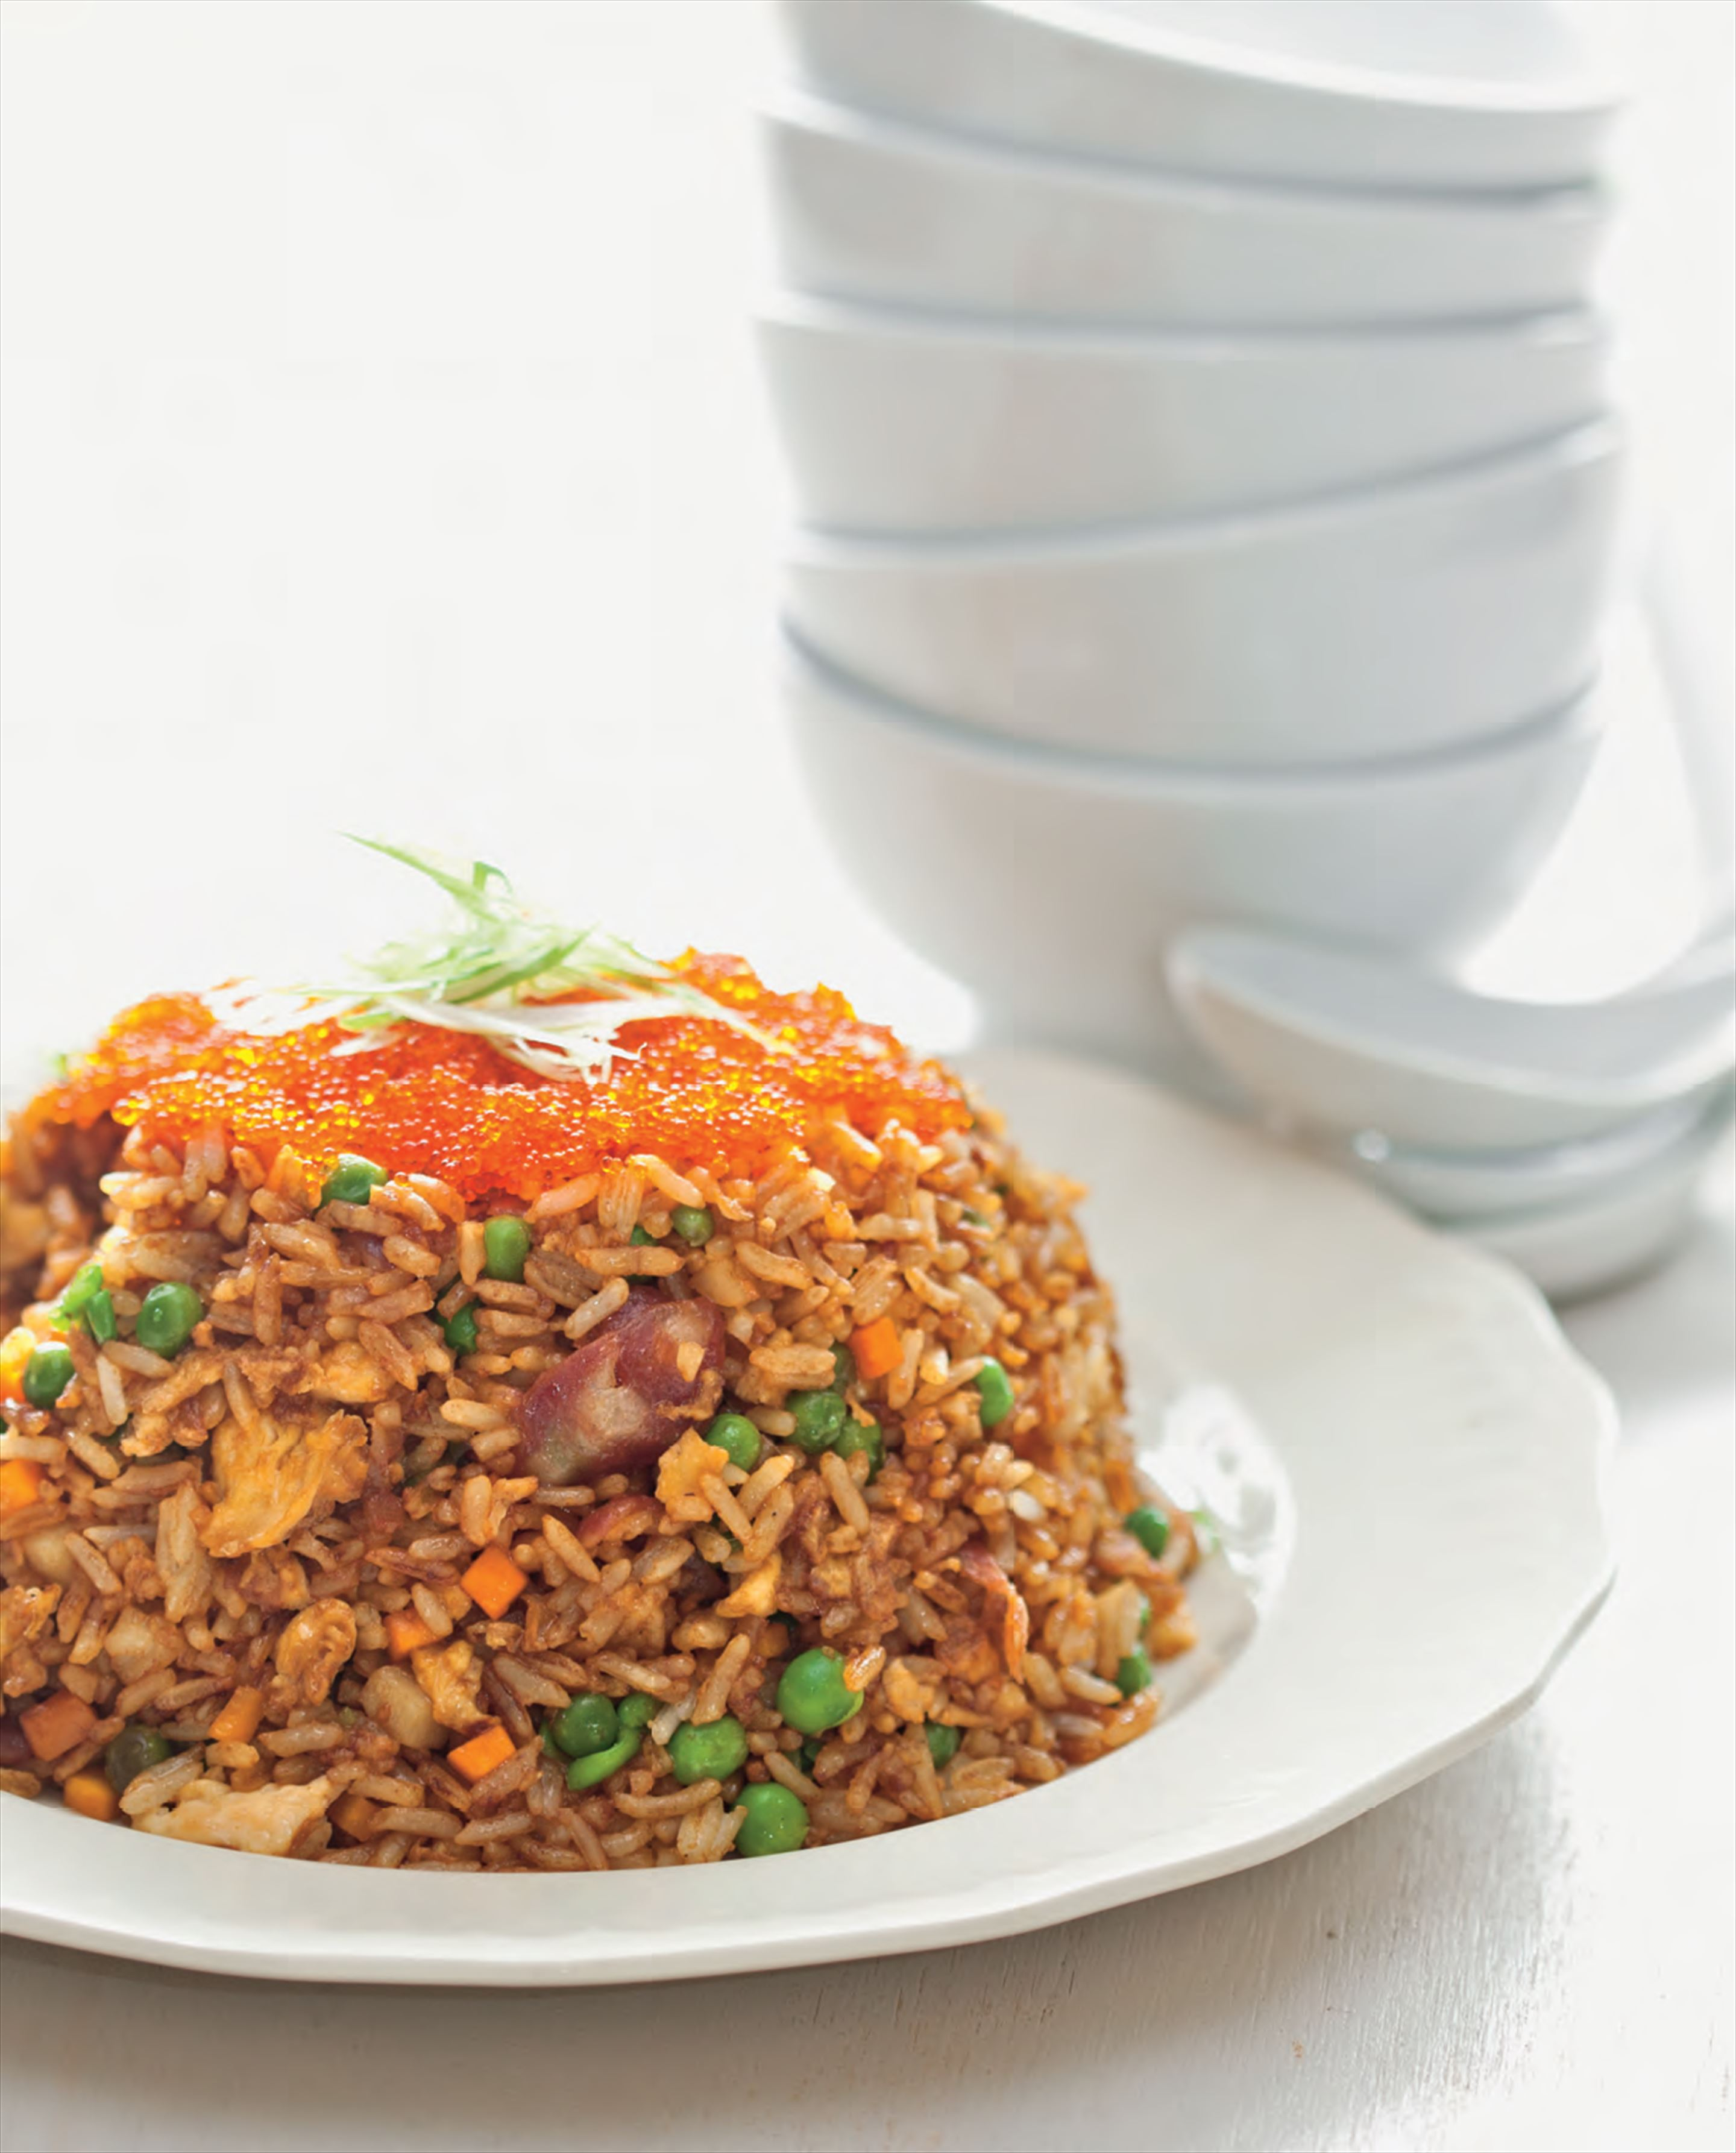 Billy's special fried rice